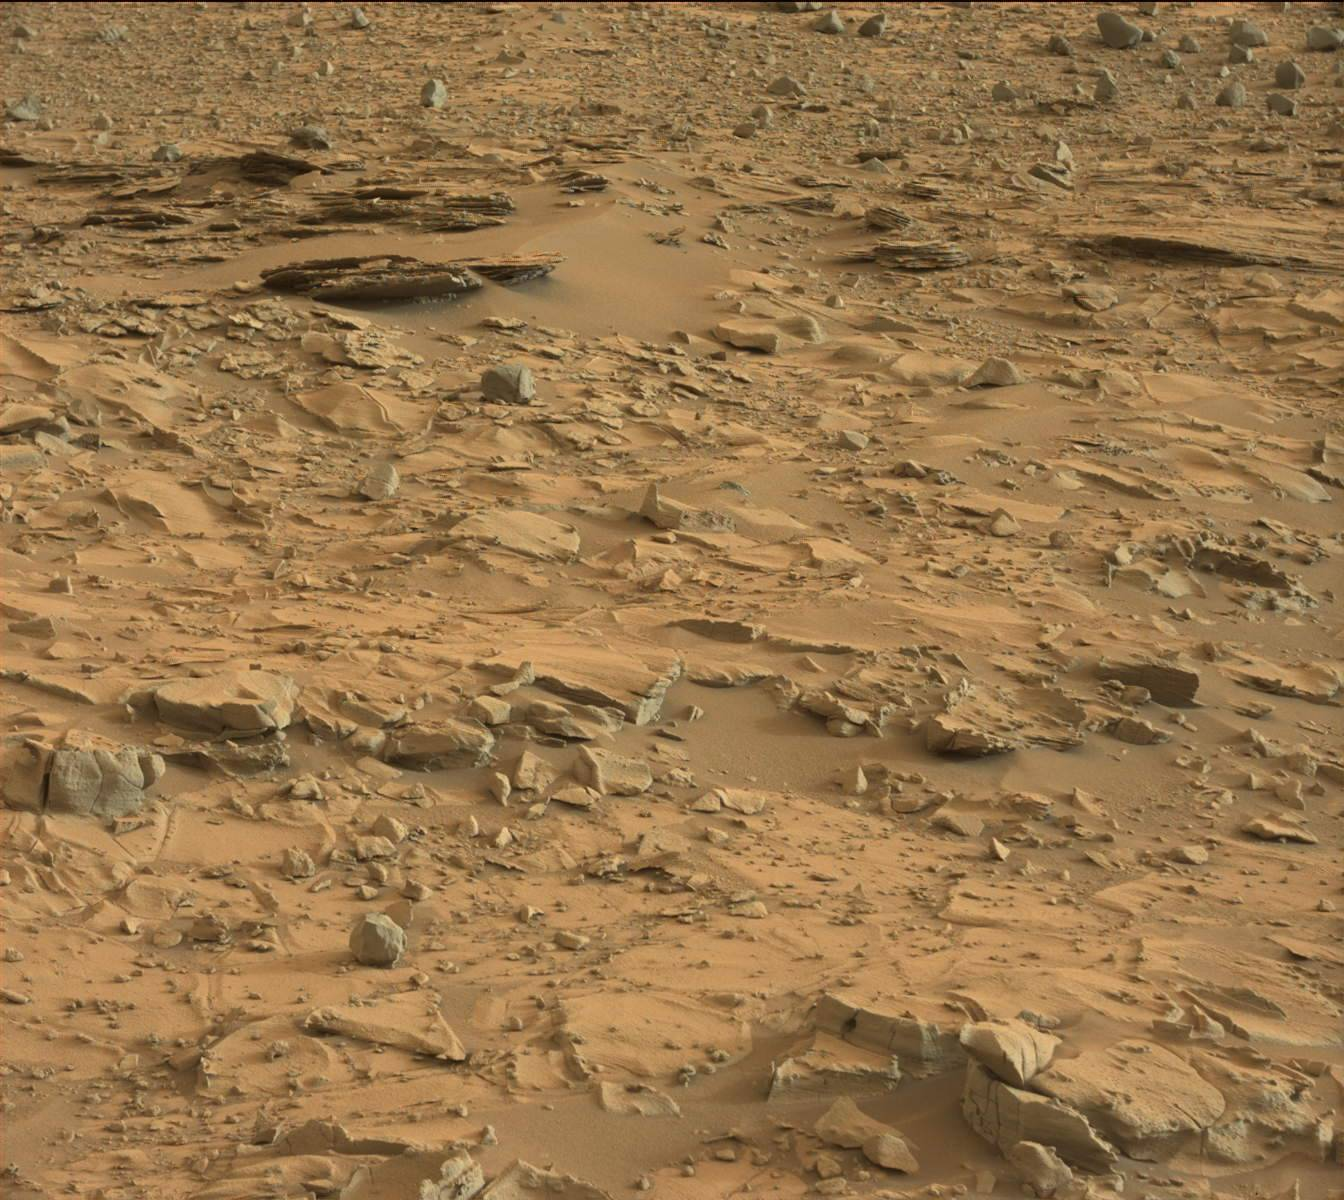 Nasa's Mars rover Curiosity acquired this image using its Mast Camera (Mastcam) on Sol 787